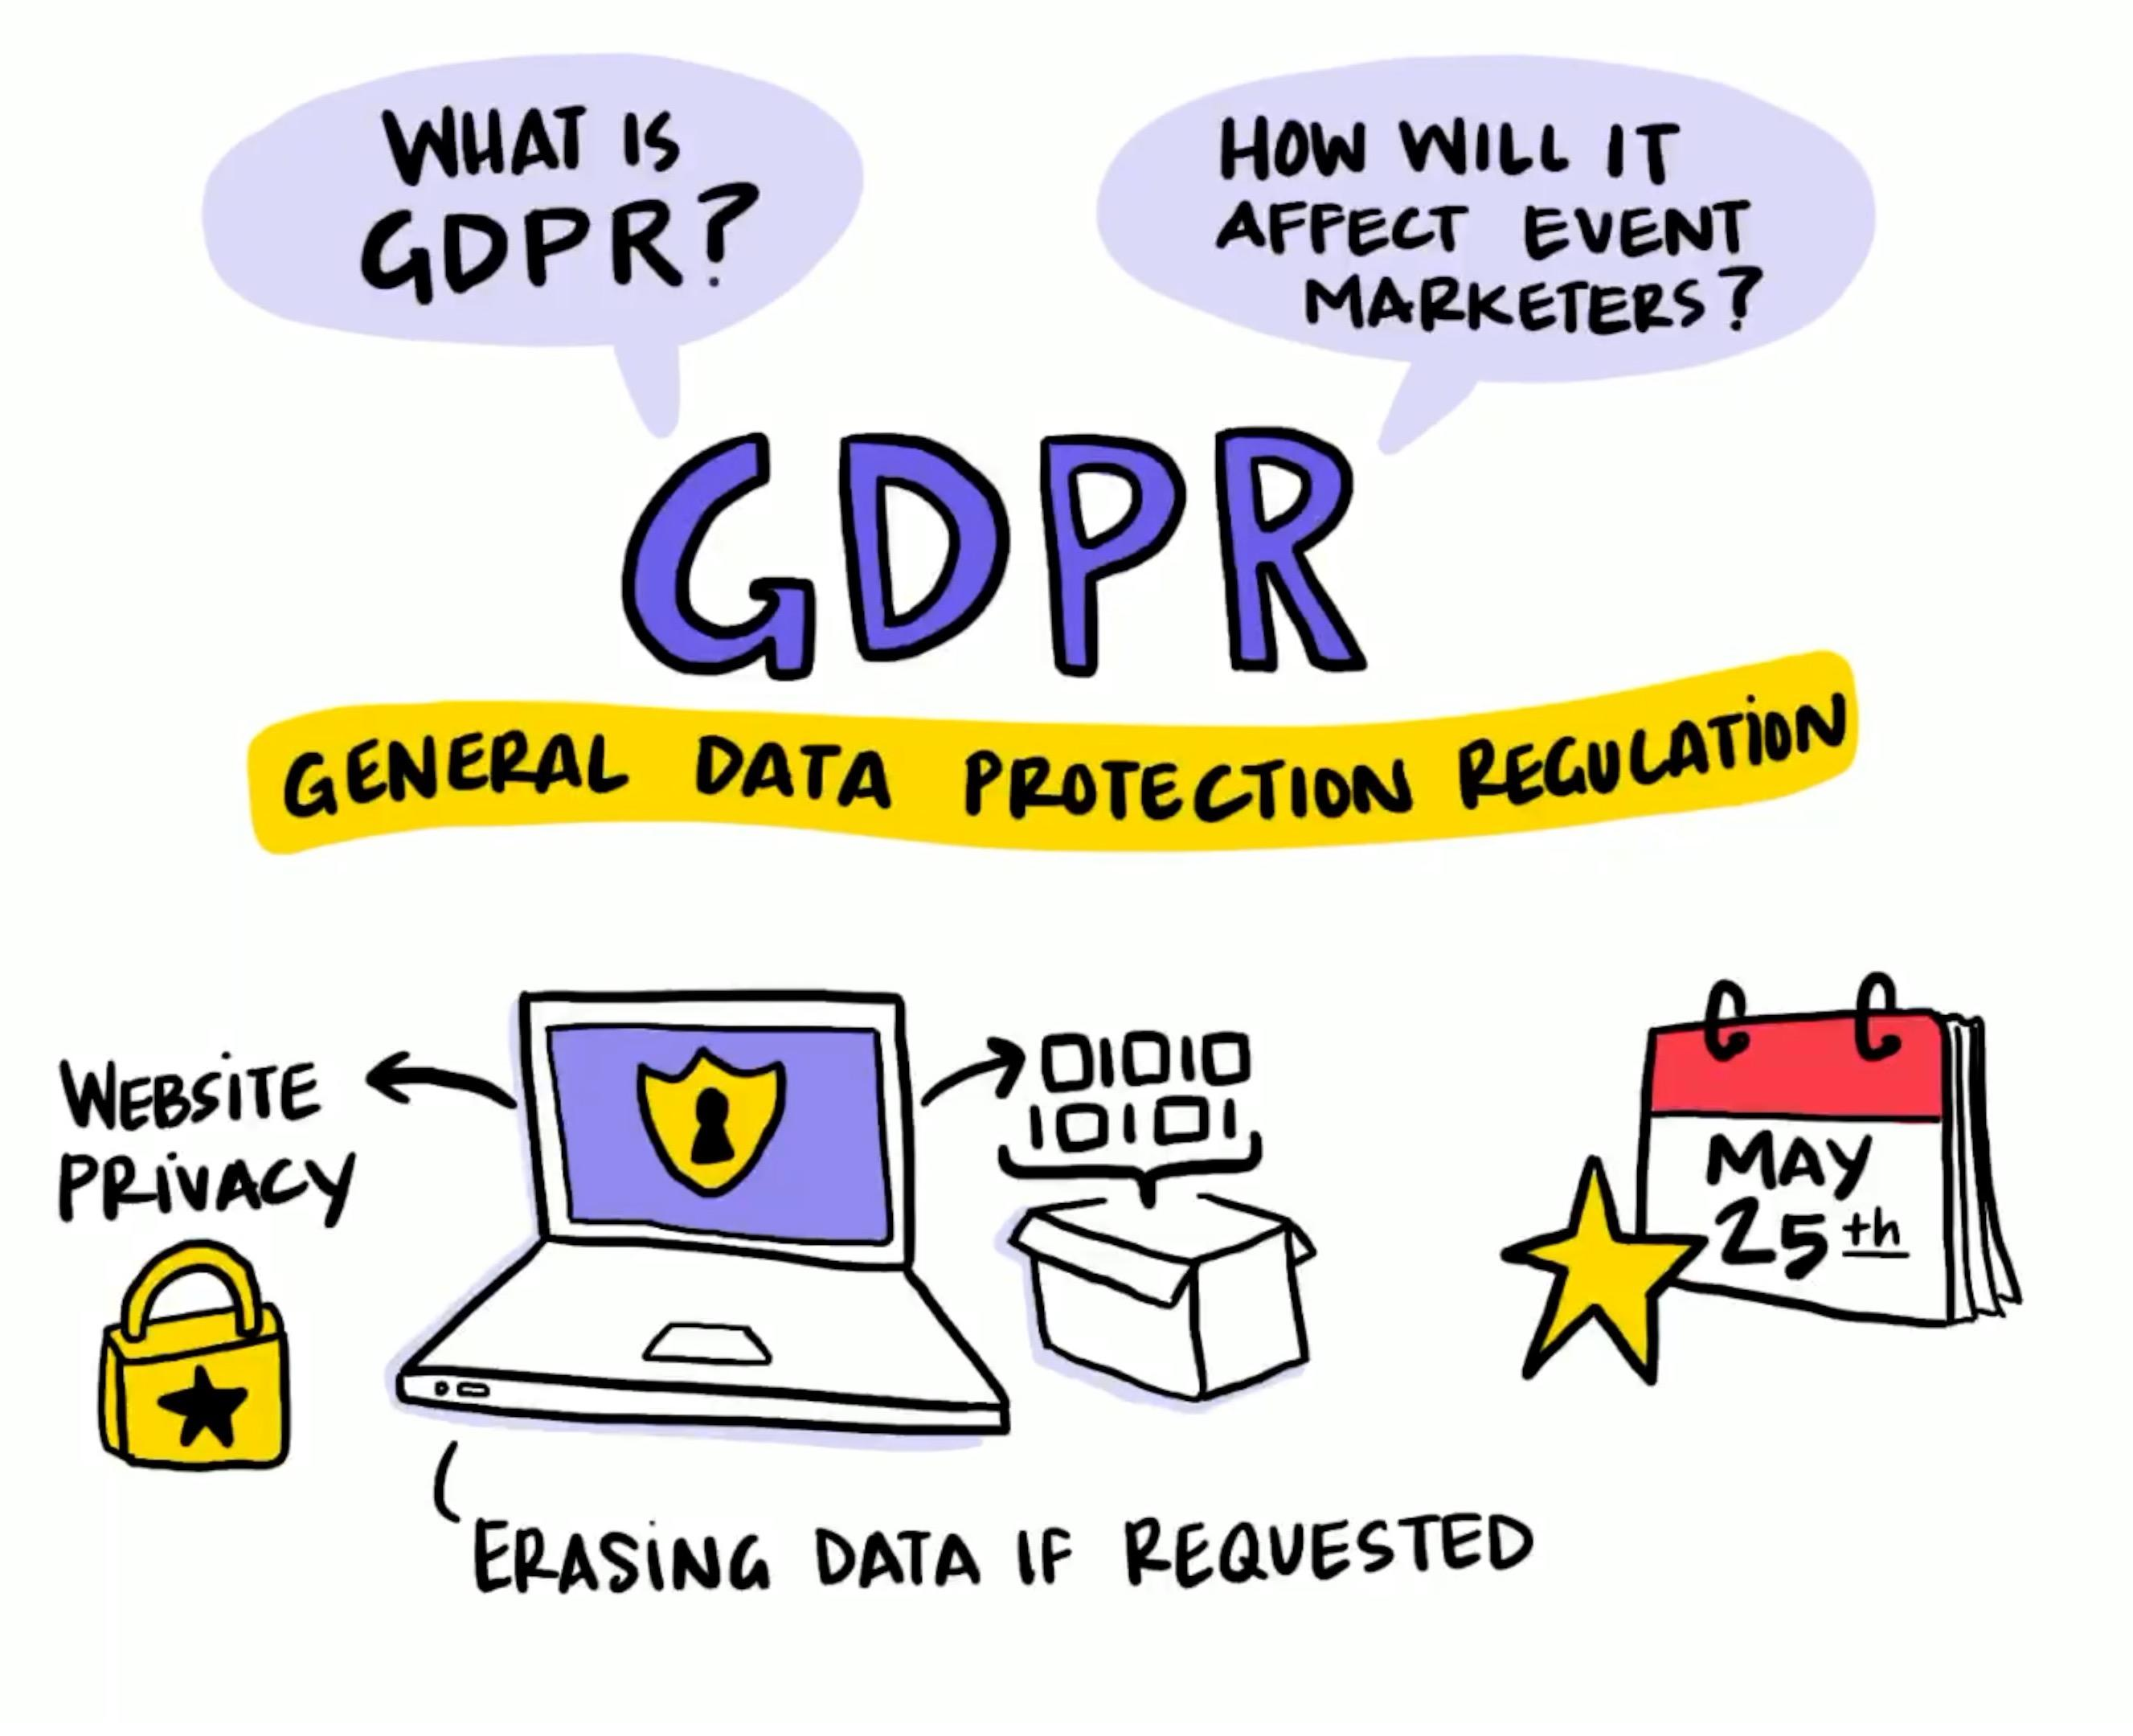 gdpr and event marketers